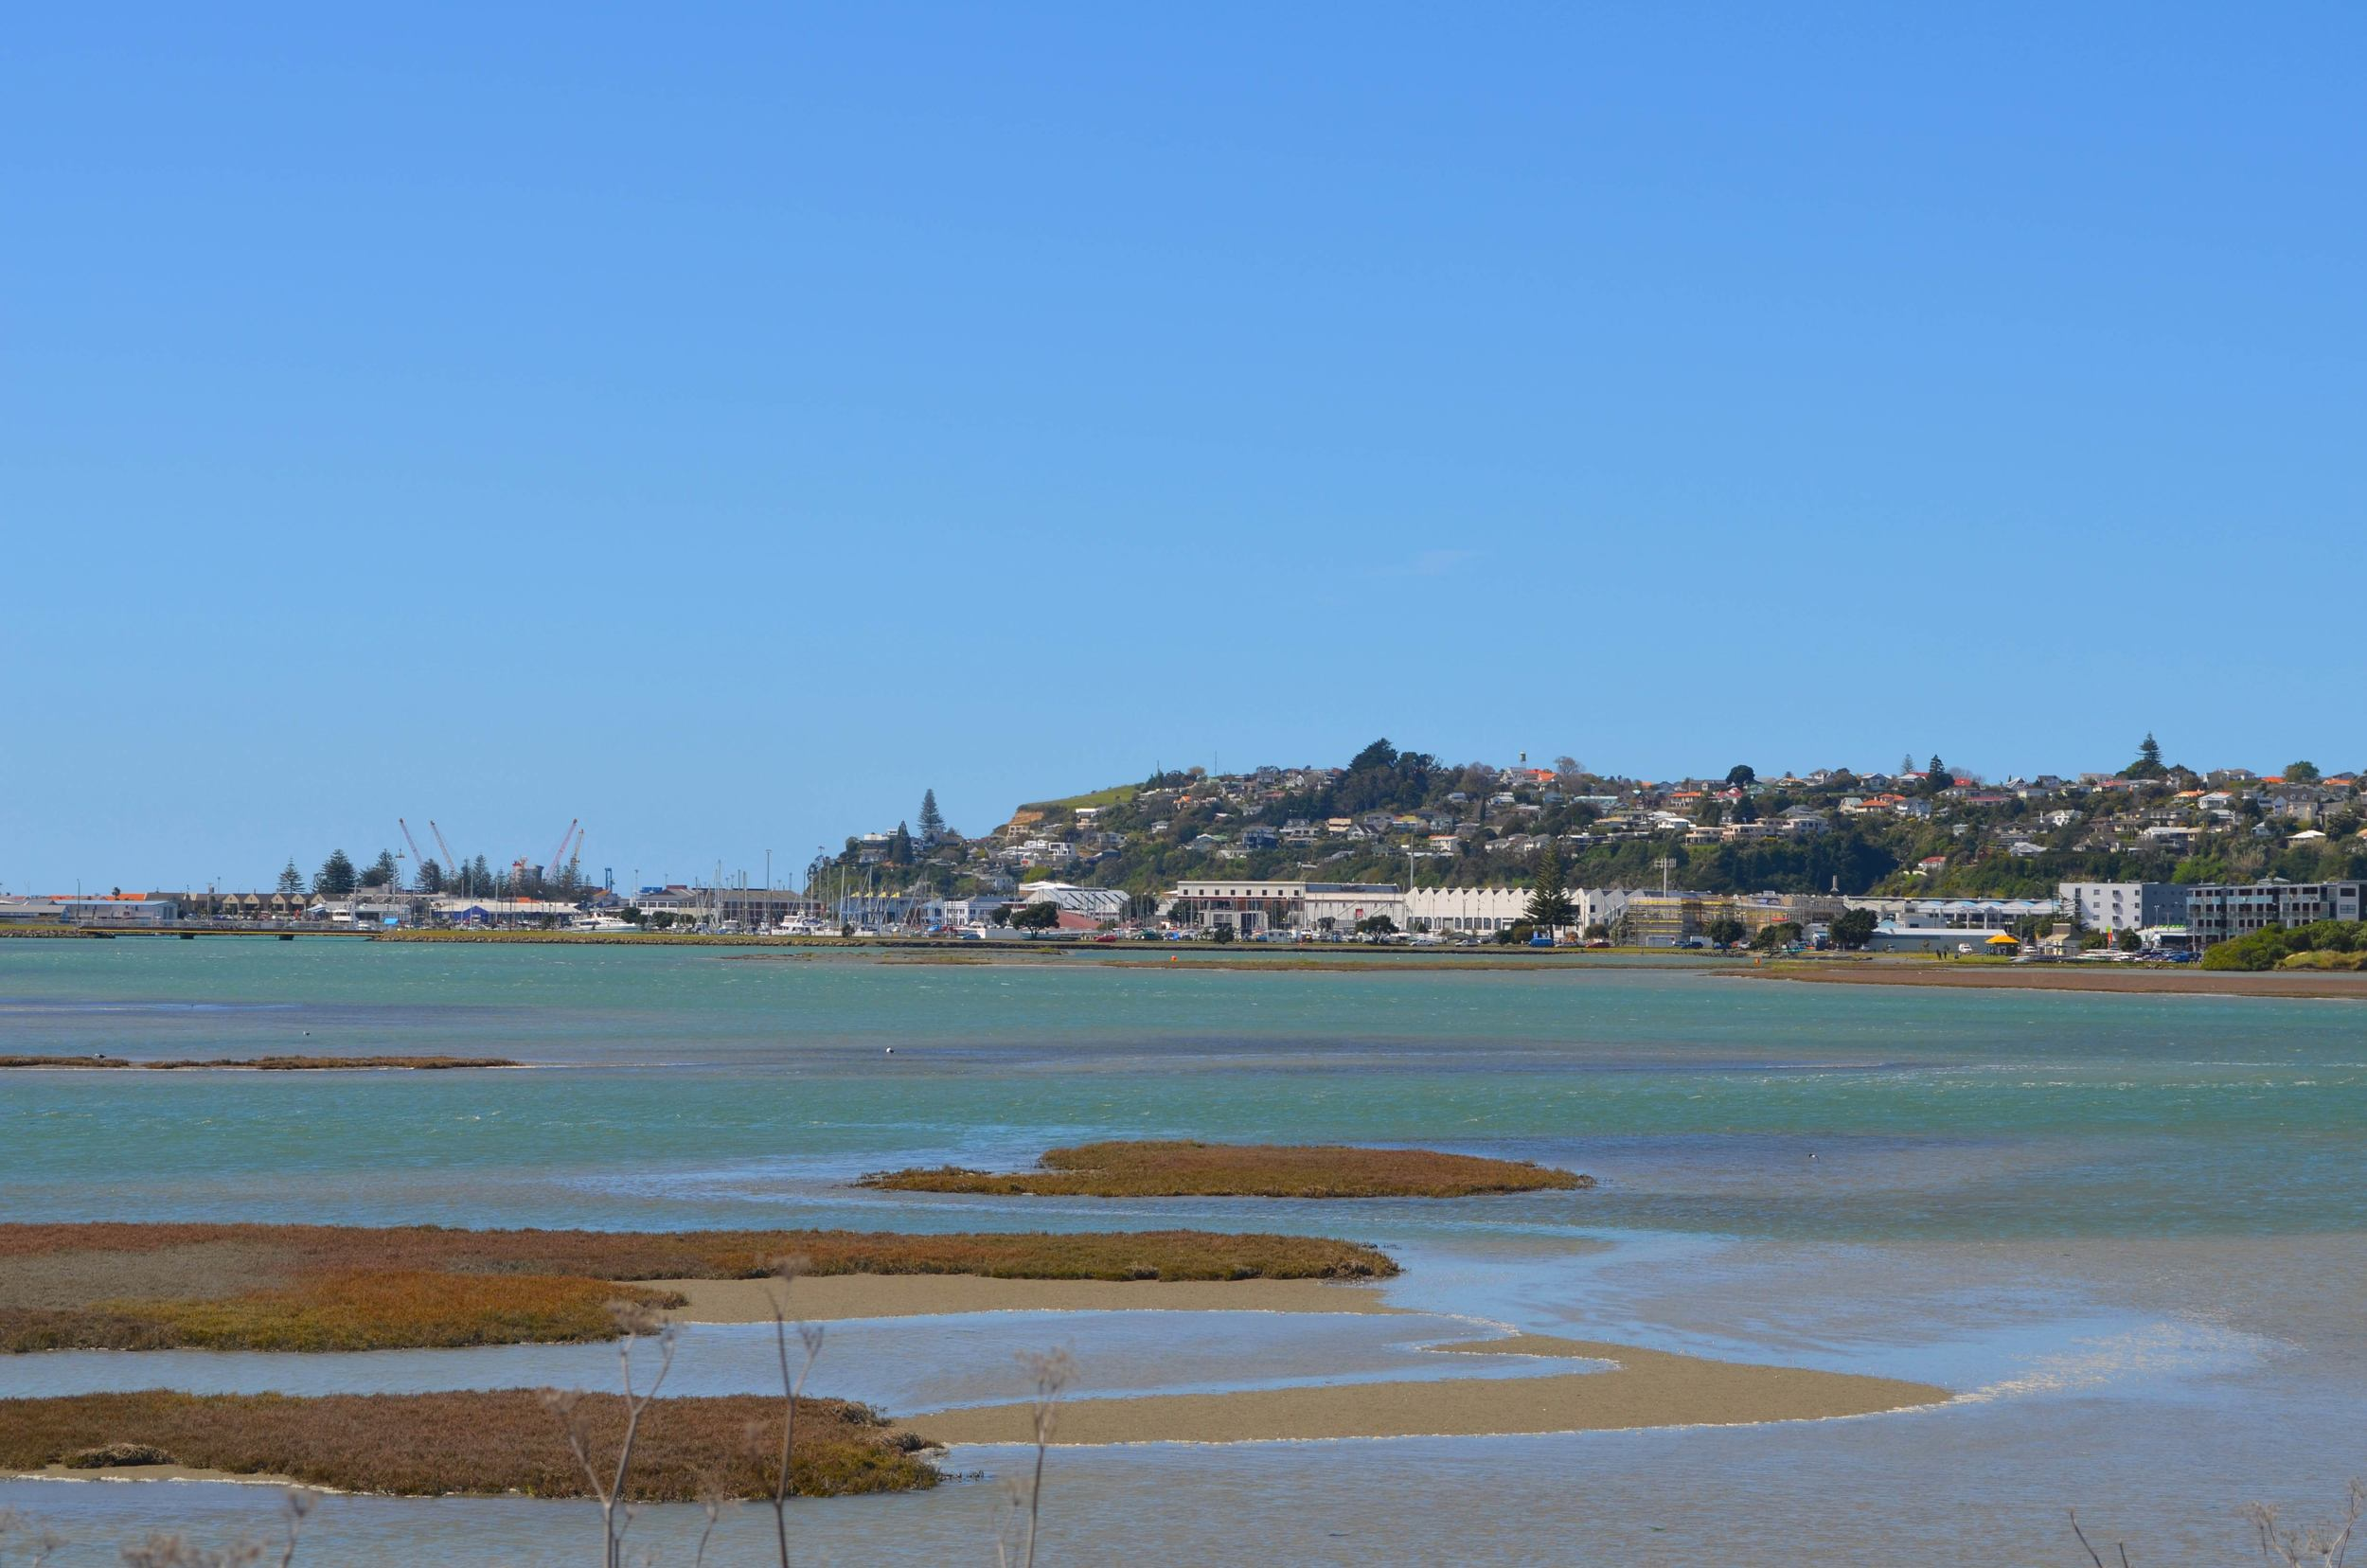 A view of Ahuriri, The Port of Napier and Bluff Hill from the estuary.